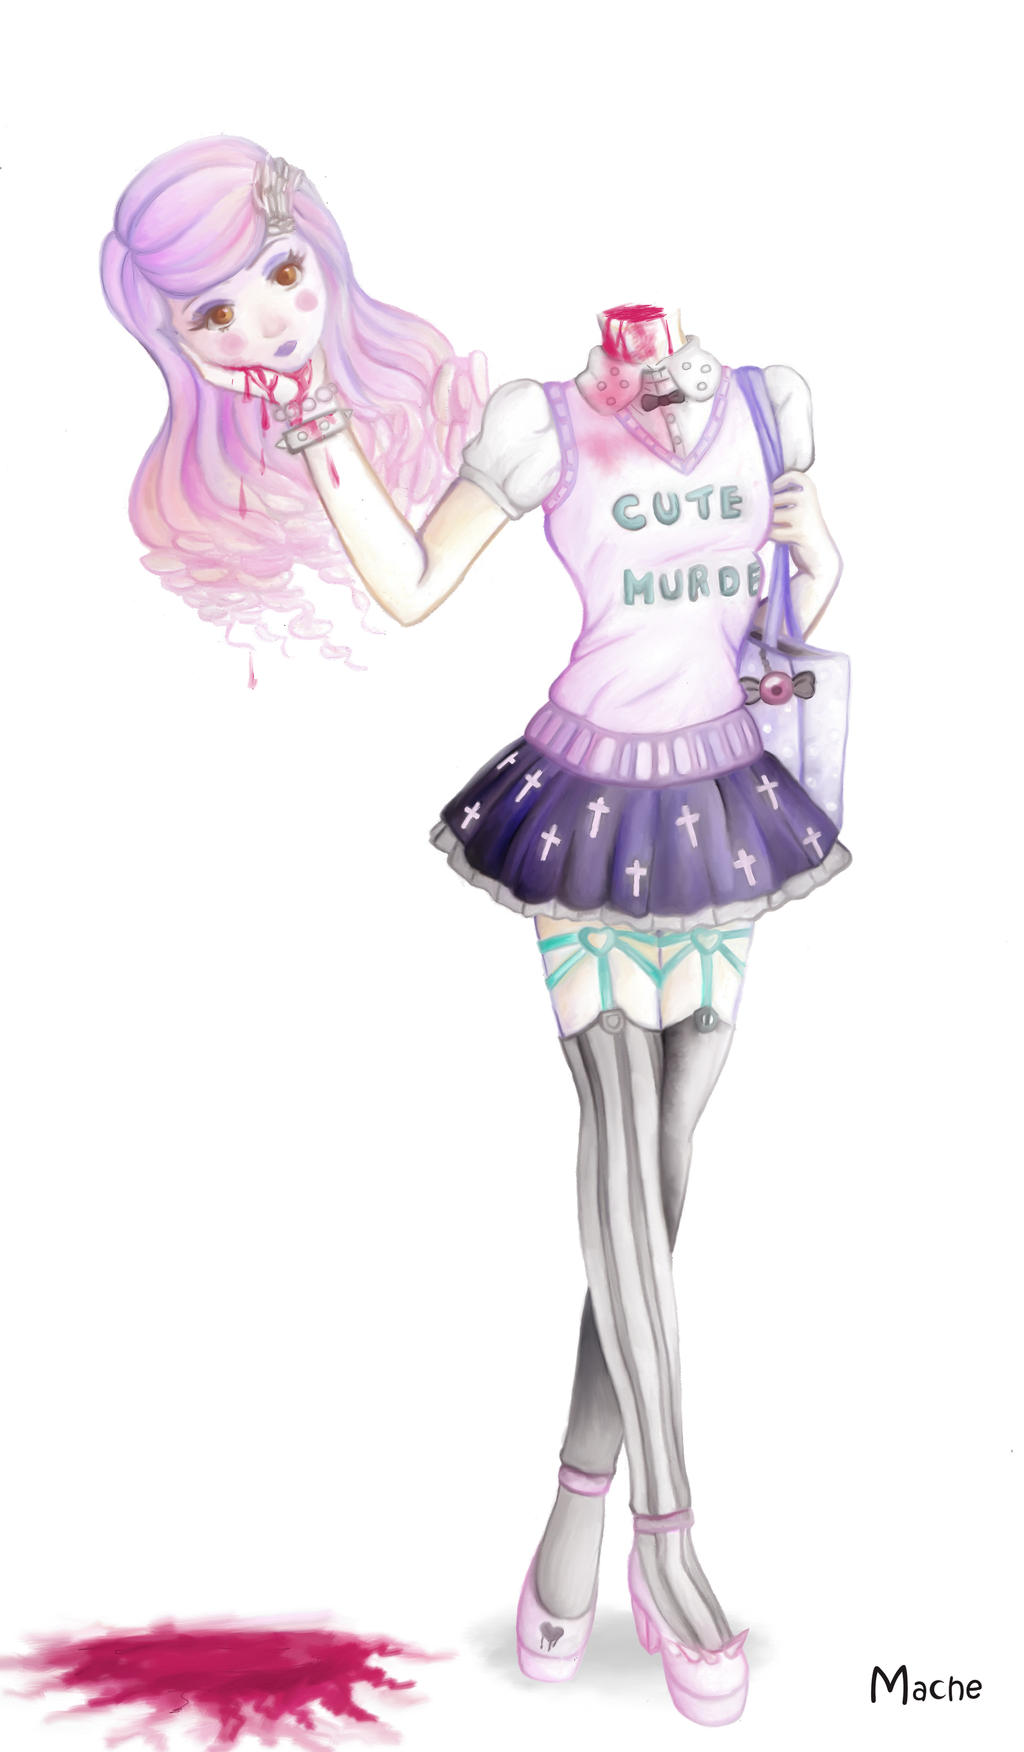 This is an image of Shocking Pastel Goth Girl Drawing